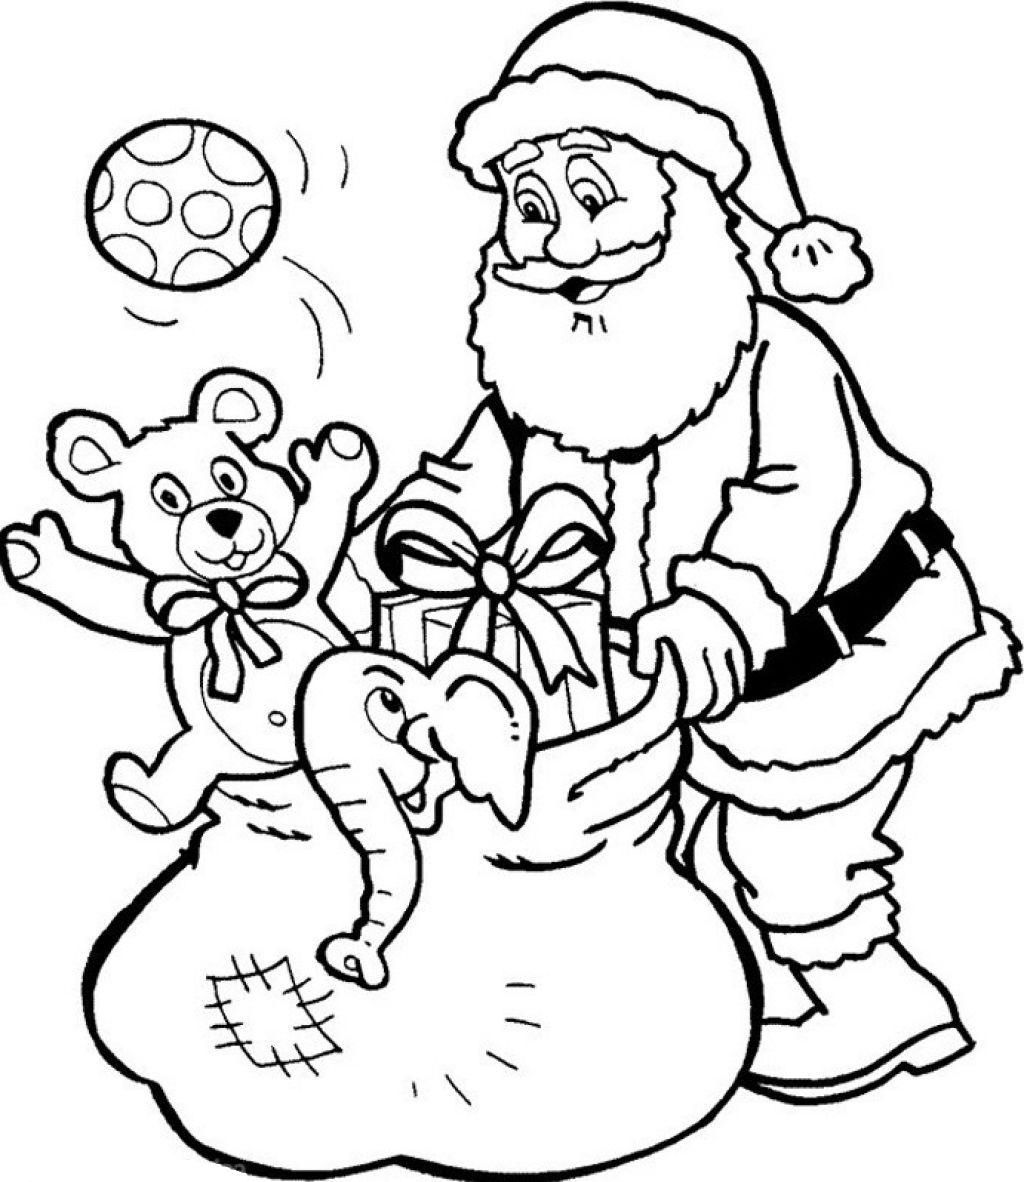 Santa Claus Coloring Pages Christmas Coloring Pages Santa Coloring Pages Printable Christmas Coloring Pages